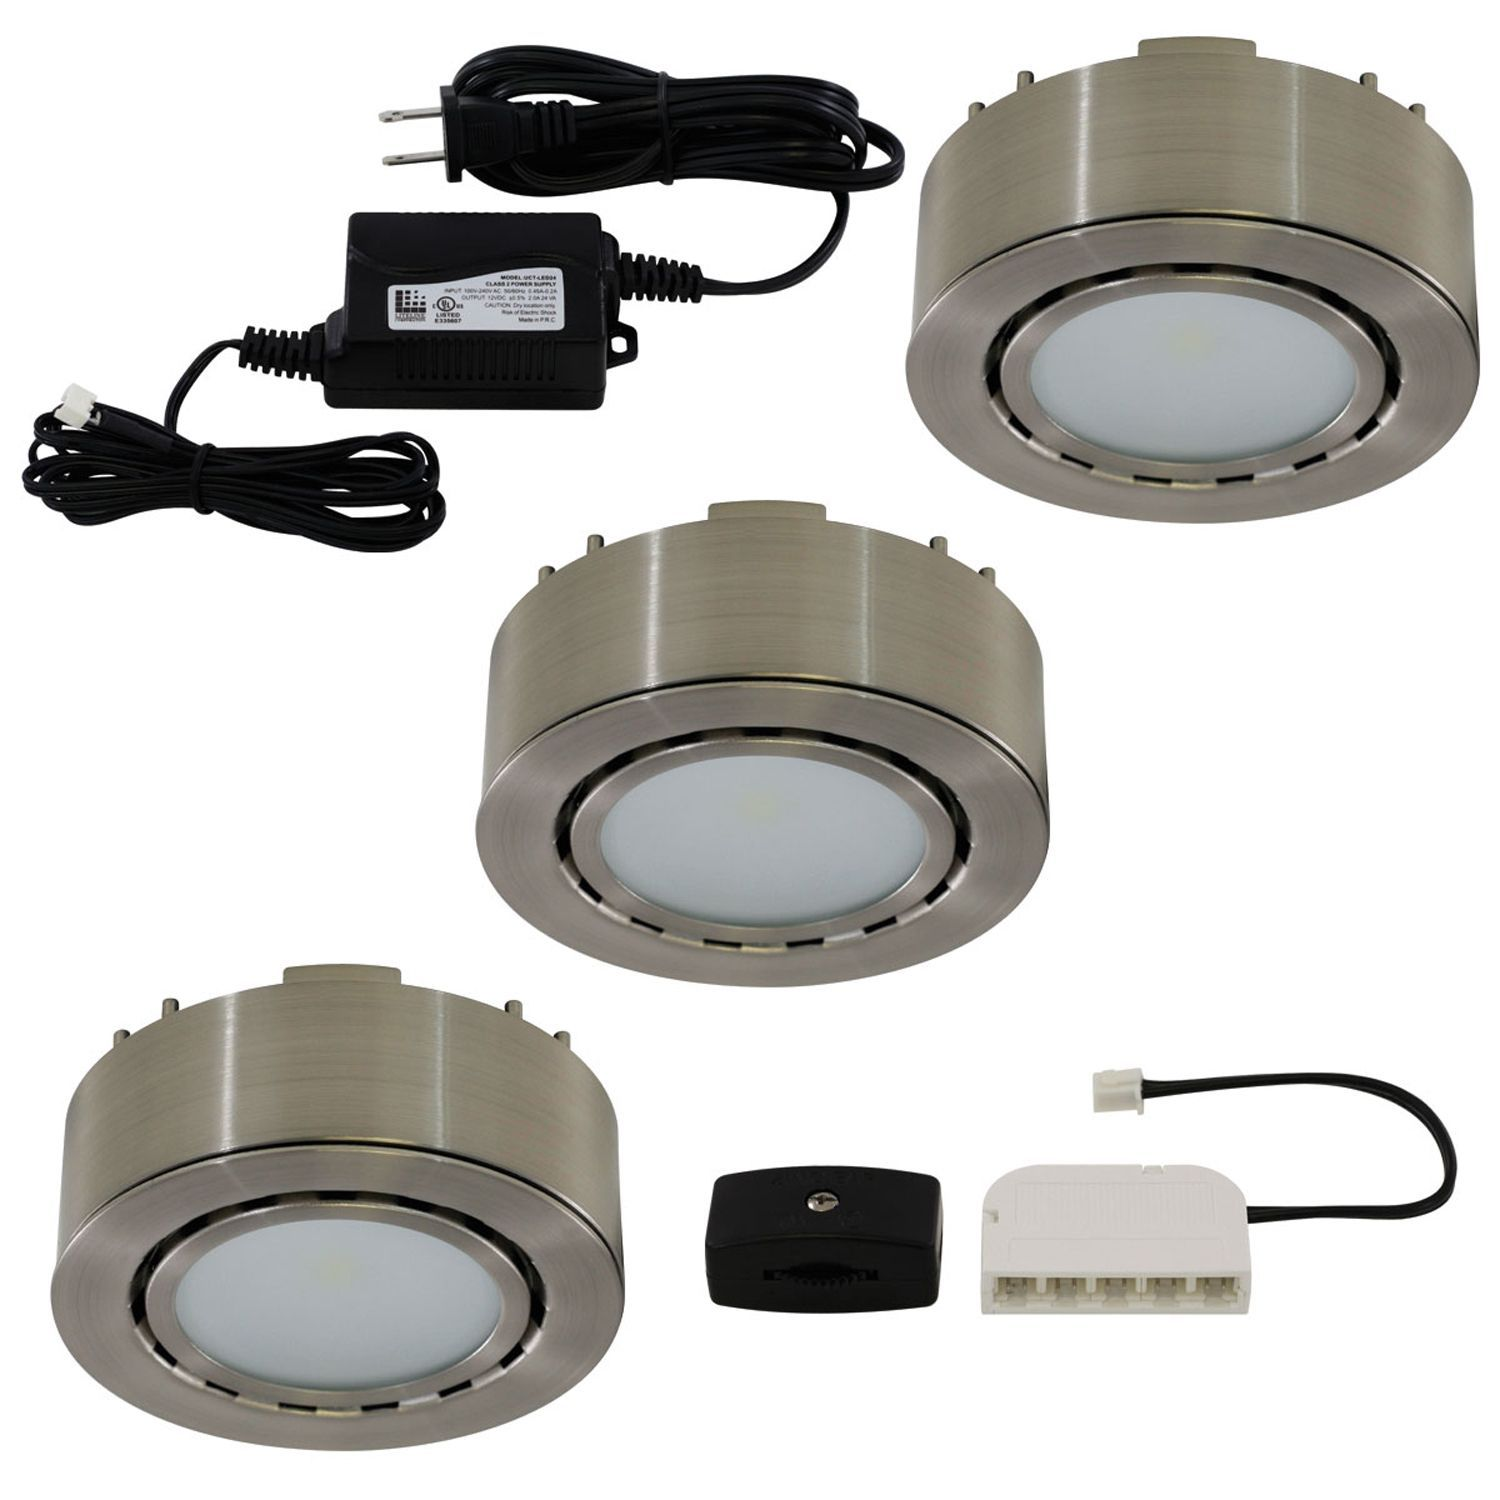 Liteline corporation ucp led3 mn 12 volt nickel led puck light 3 liteline corporation ucp led3 mn 12 volt nickel led puck light 3 count track lightingblack aloadofball Image collections